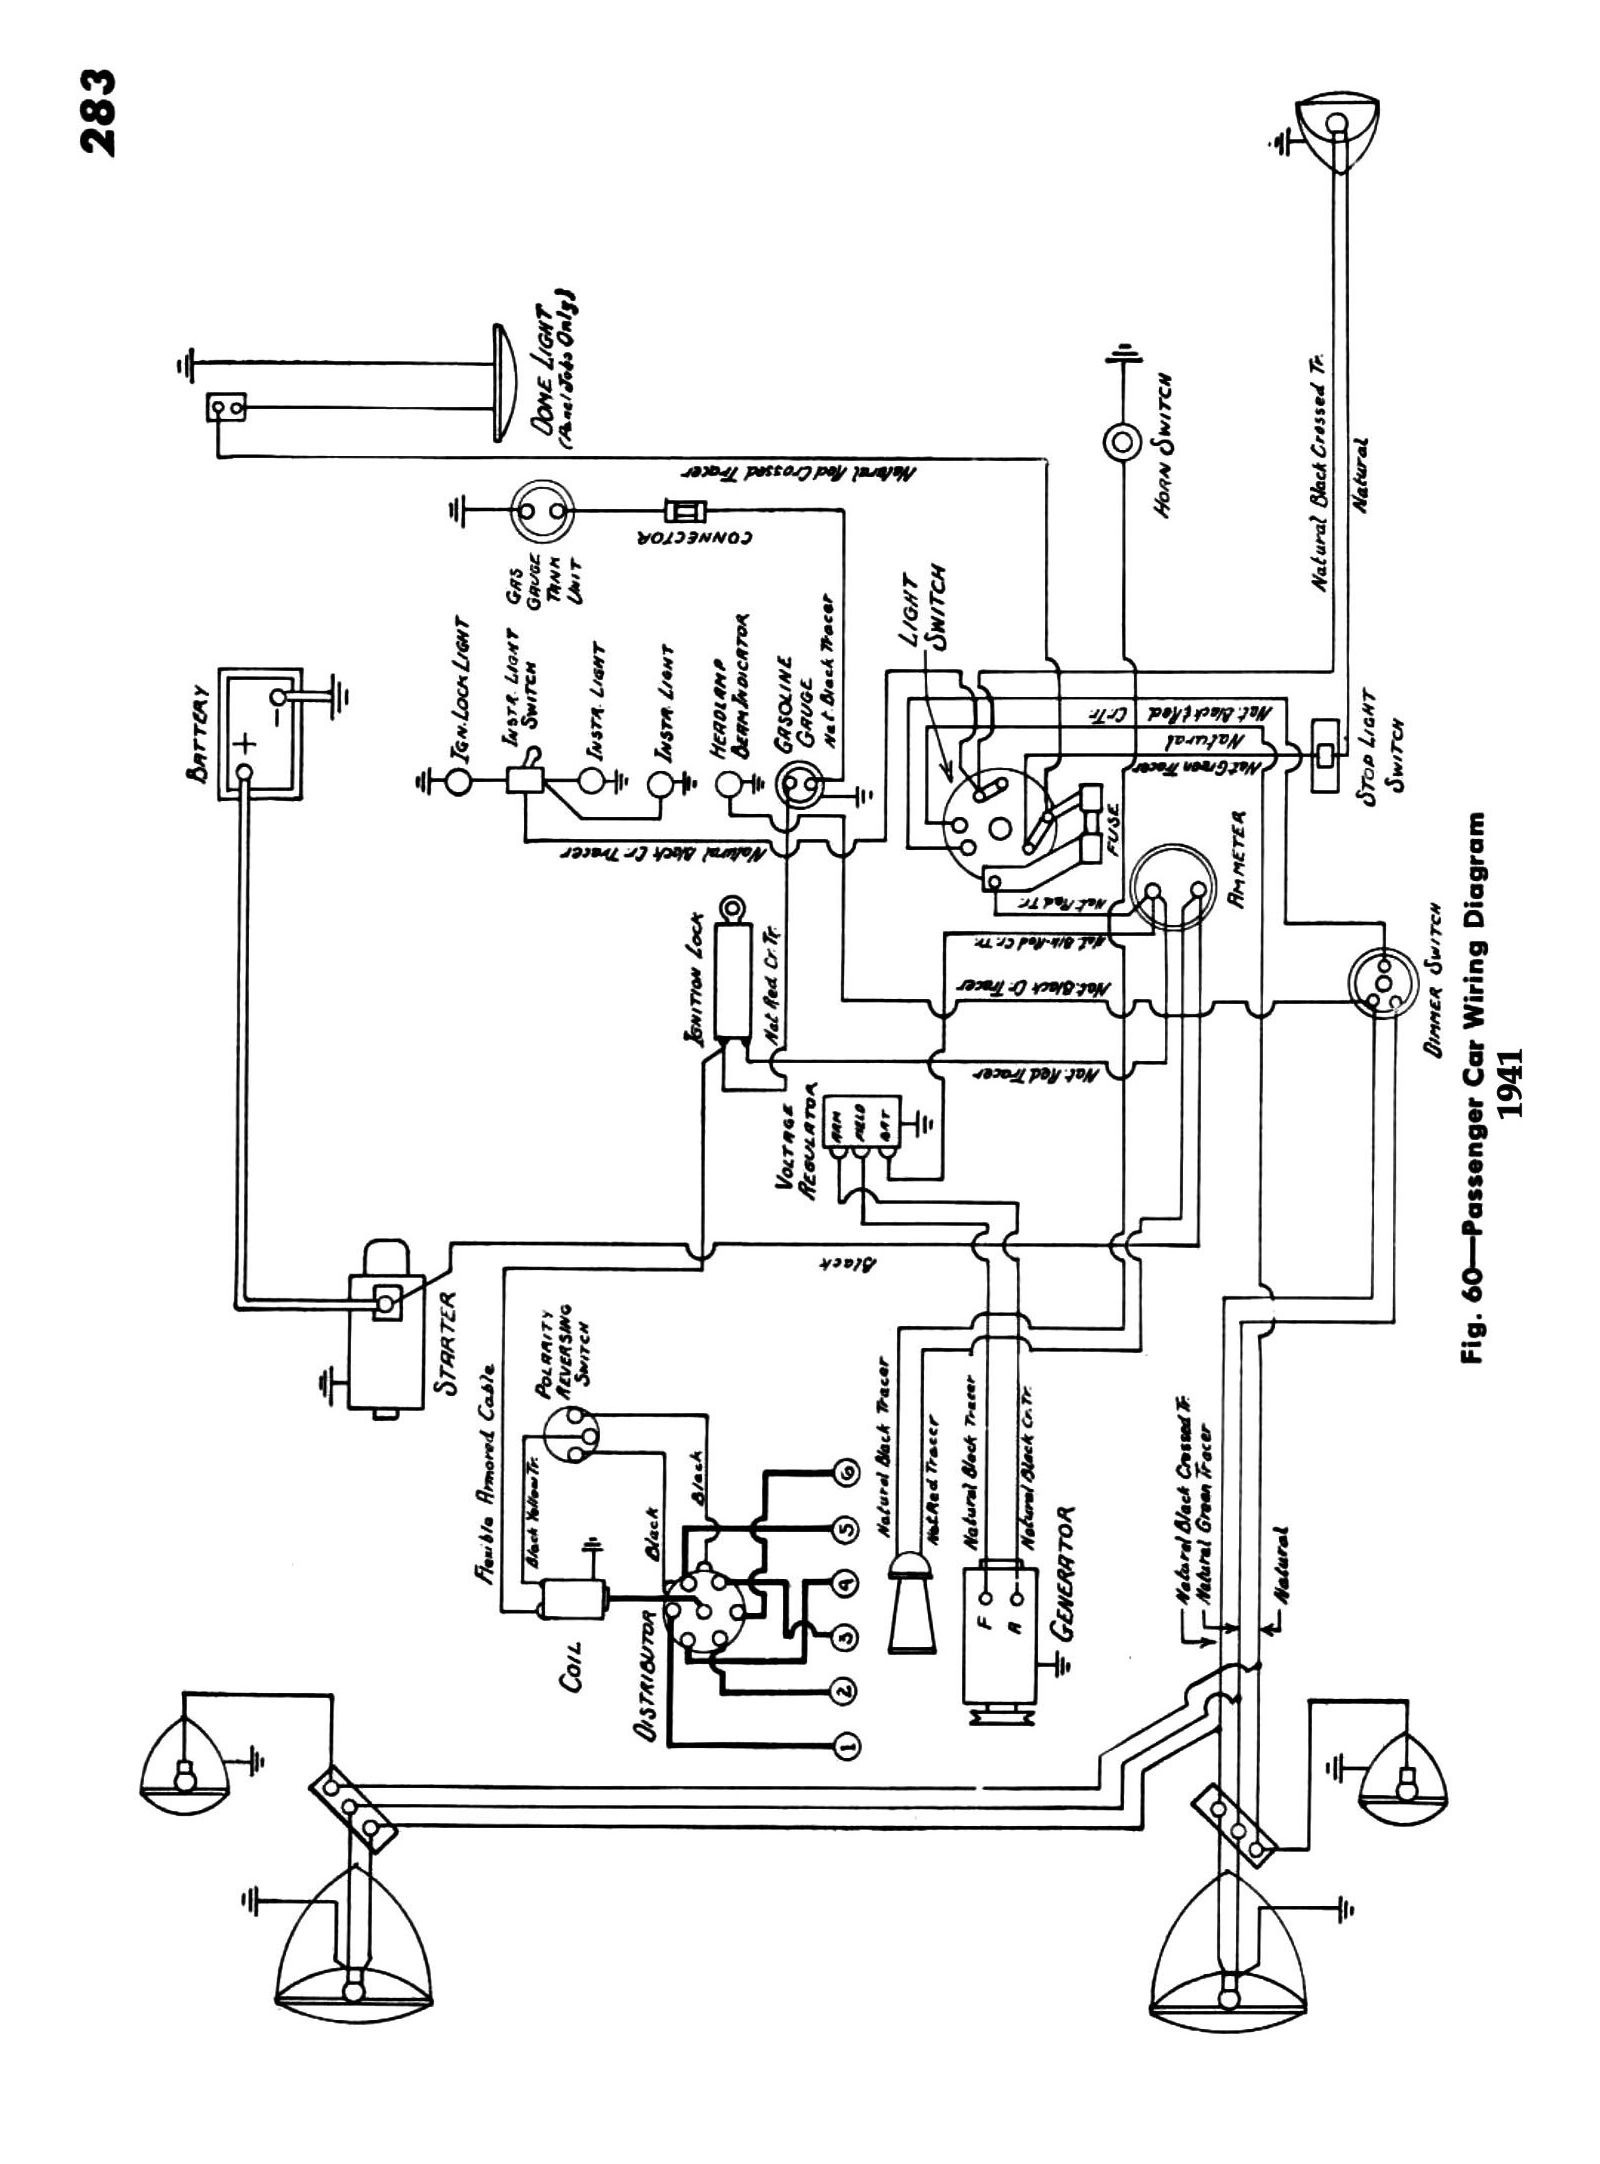 2003 Cadillac Deville Wiring Harness Automotive Diagrams Diagram For Chevy Rh Oldcarmanualproject Cts Wiringdiagram